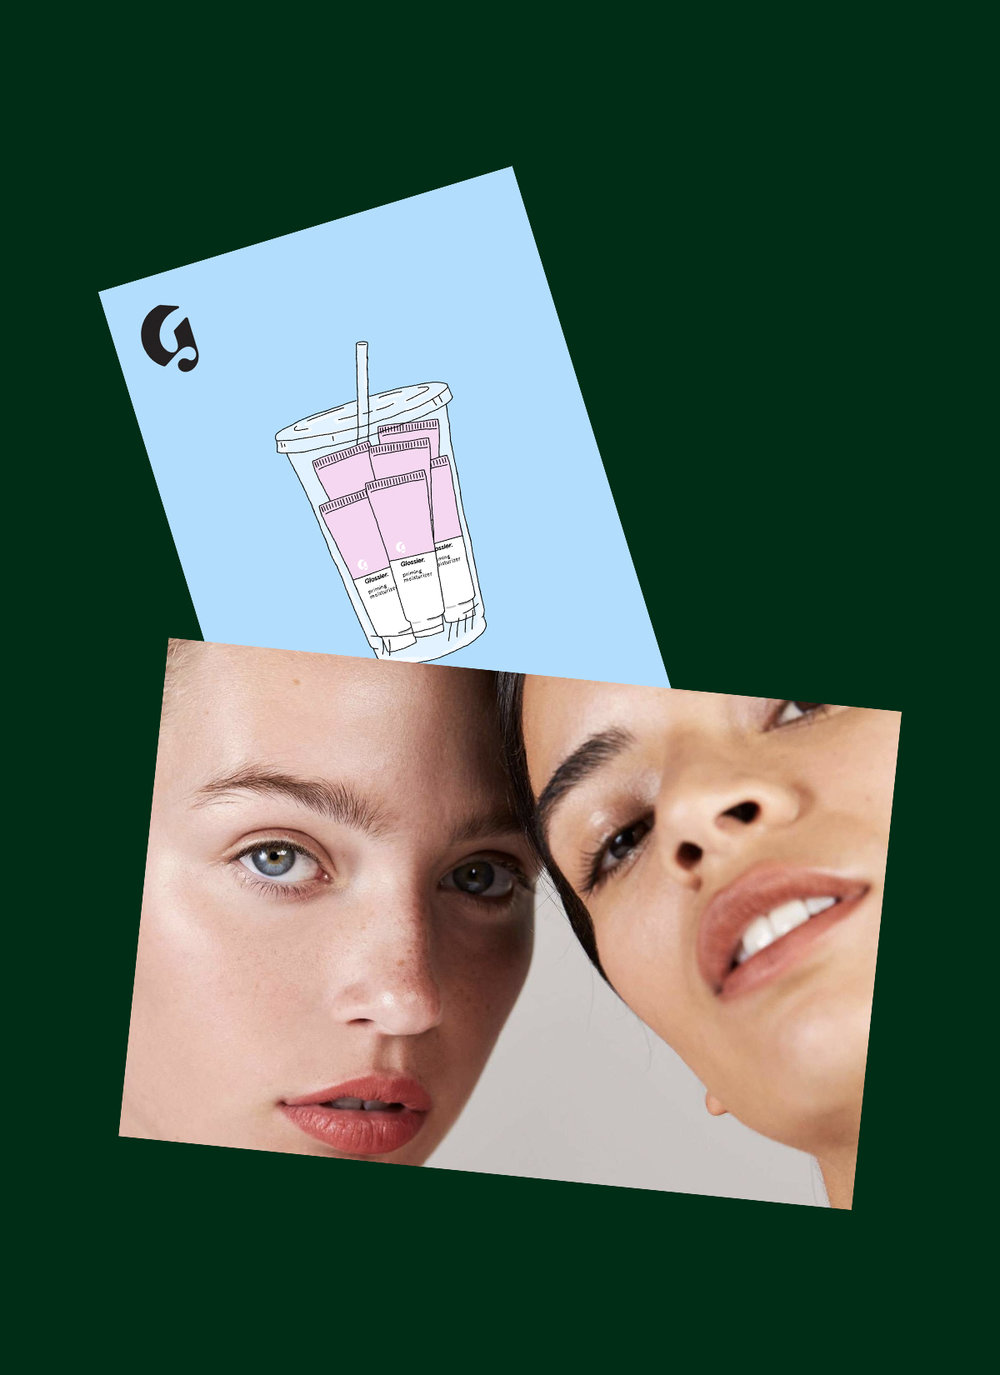 Glossier - posters, illustration